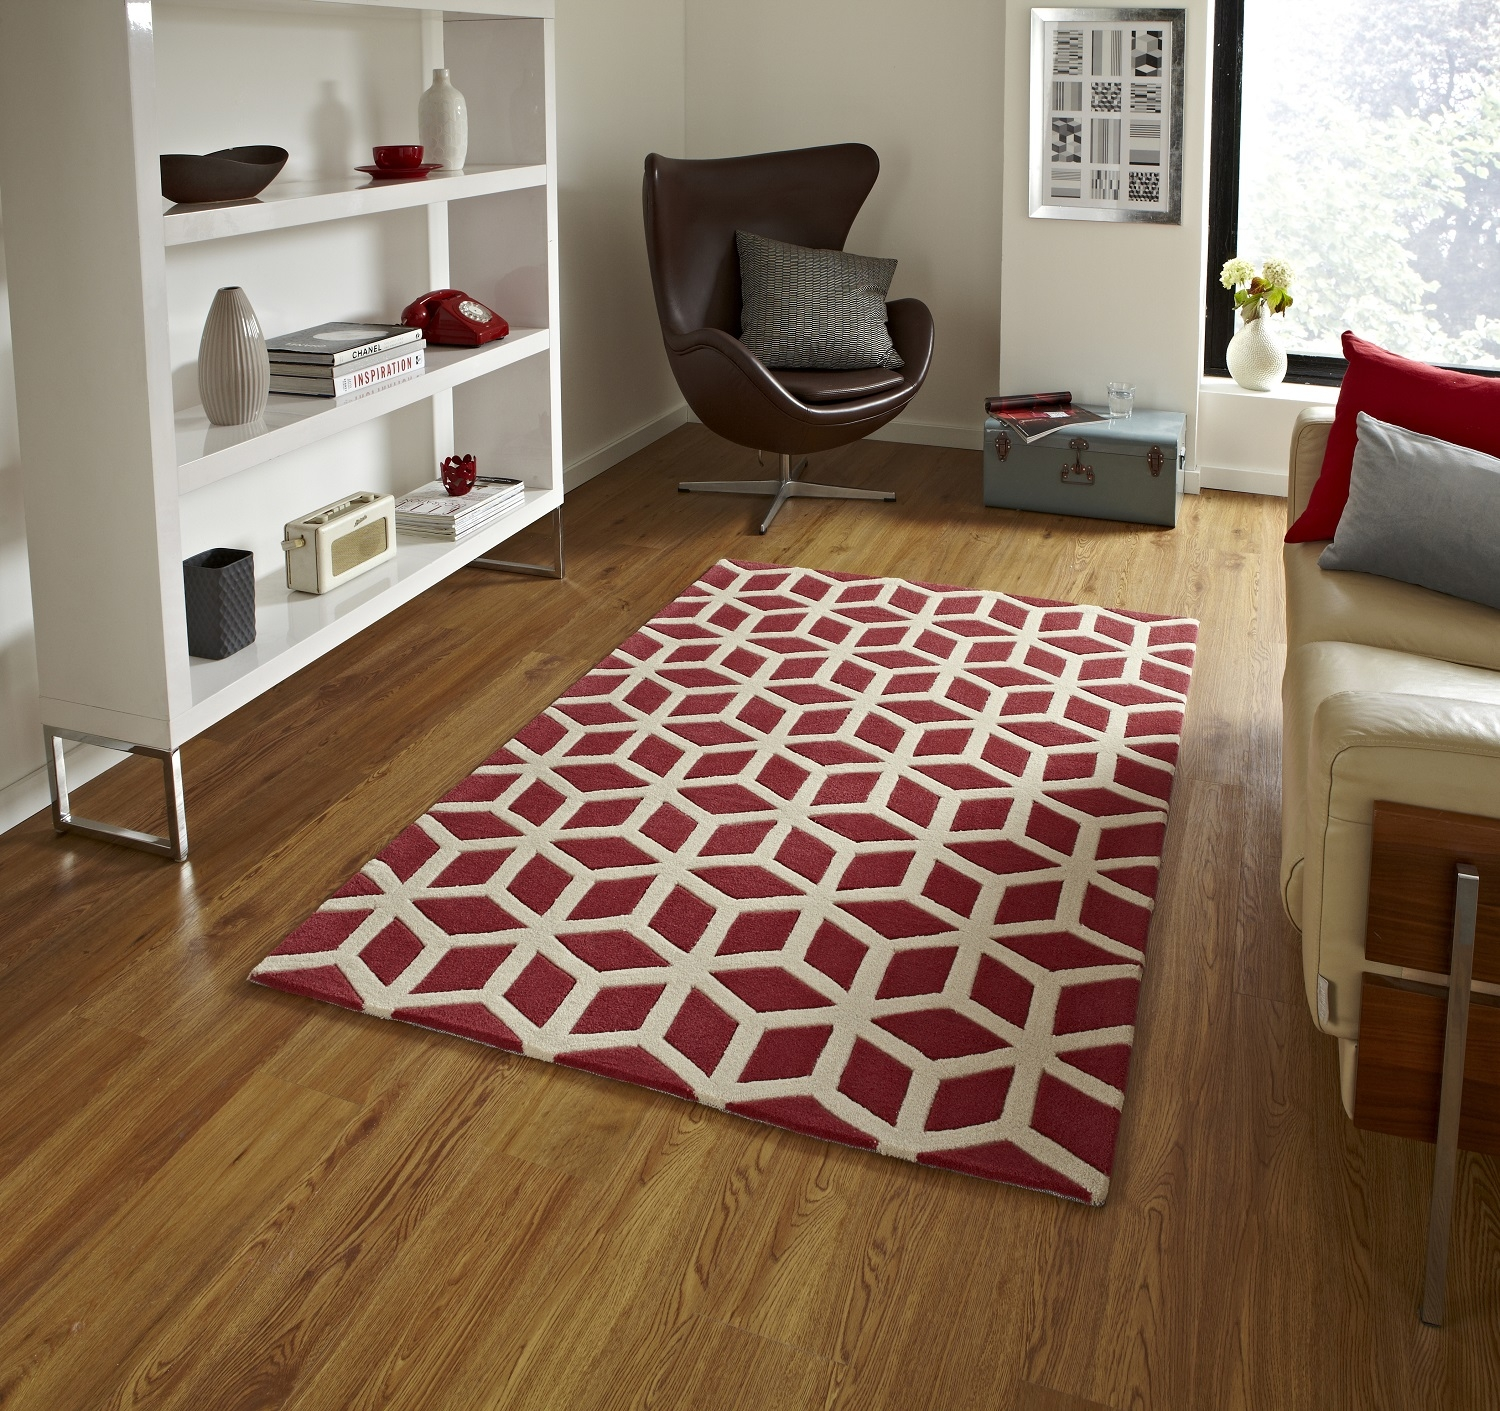 Modern Floor Rugs Regarding Large Geometric Rugs (Image 12 of 15)